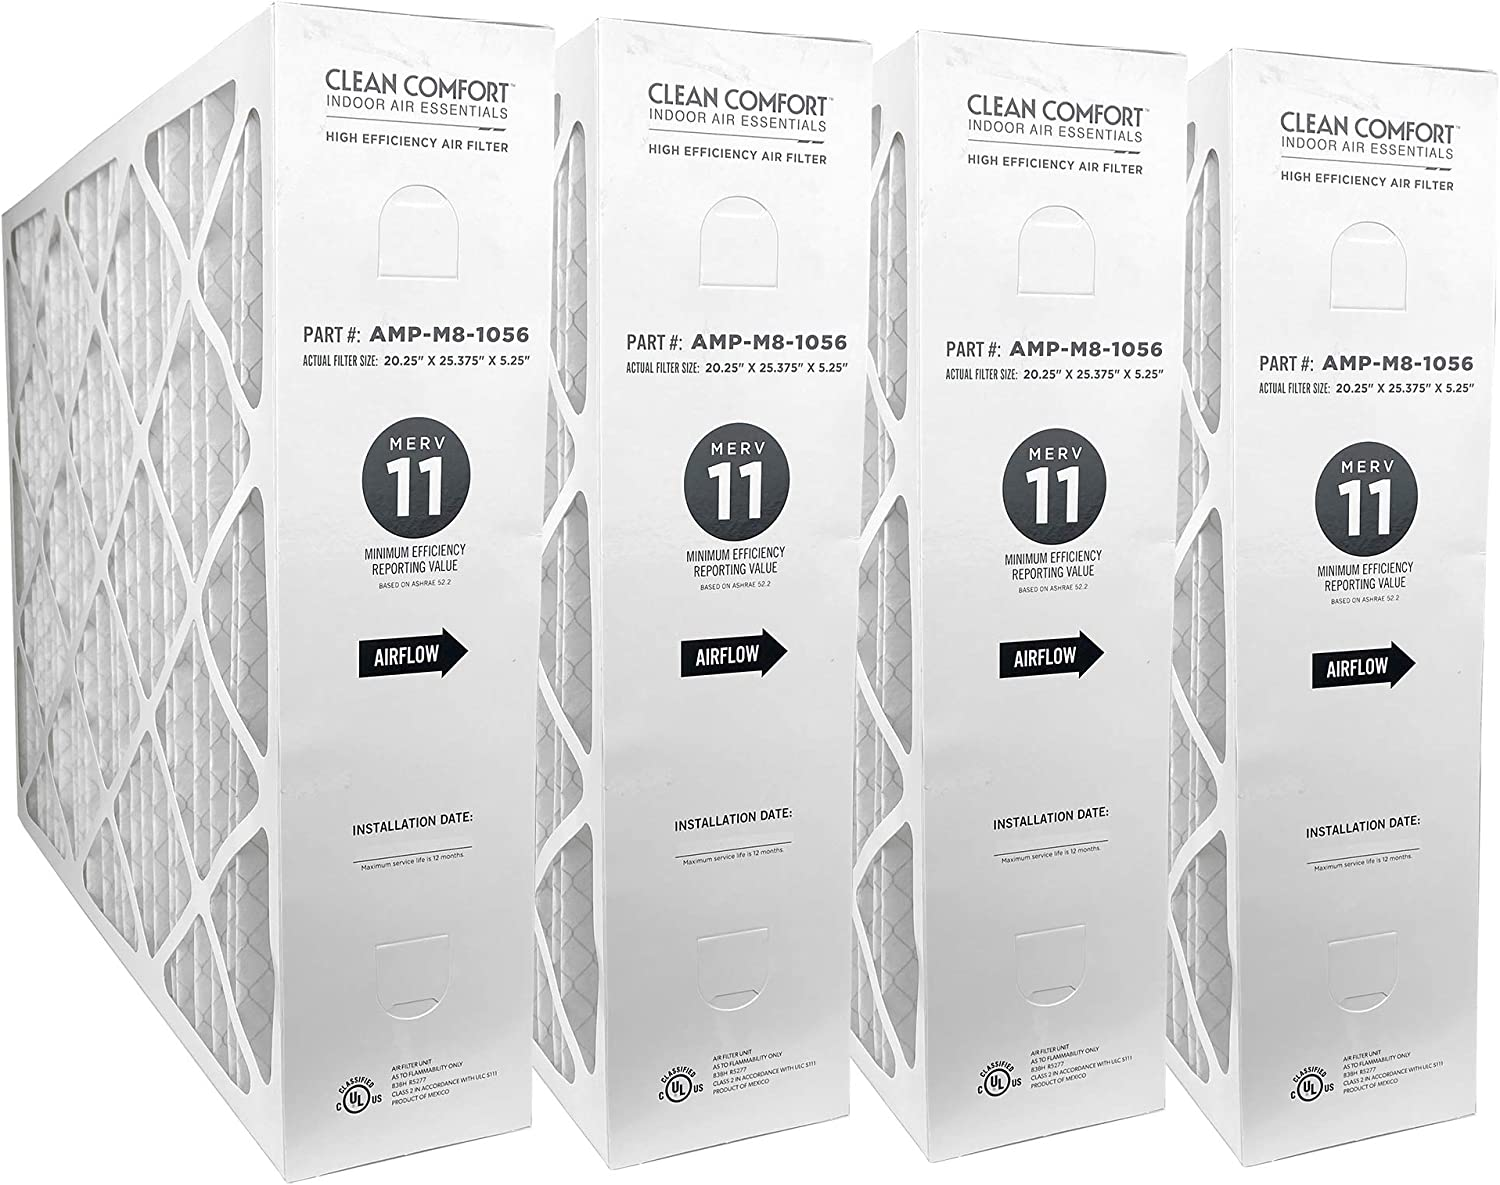 Clean Comfort Merv 11 Replacement Filter for 1625 Media Cleaner 3-Pack M1-1056